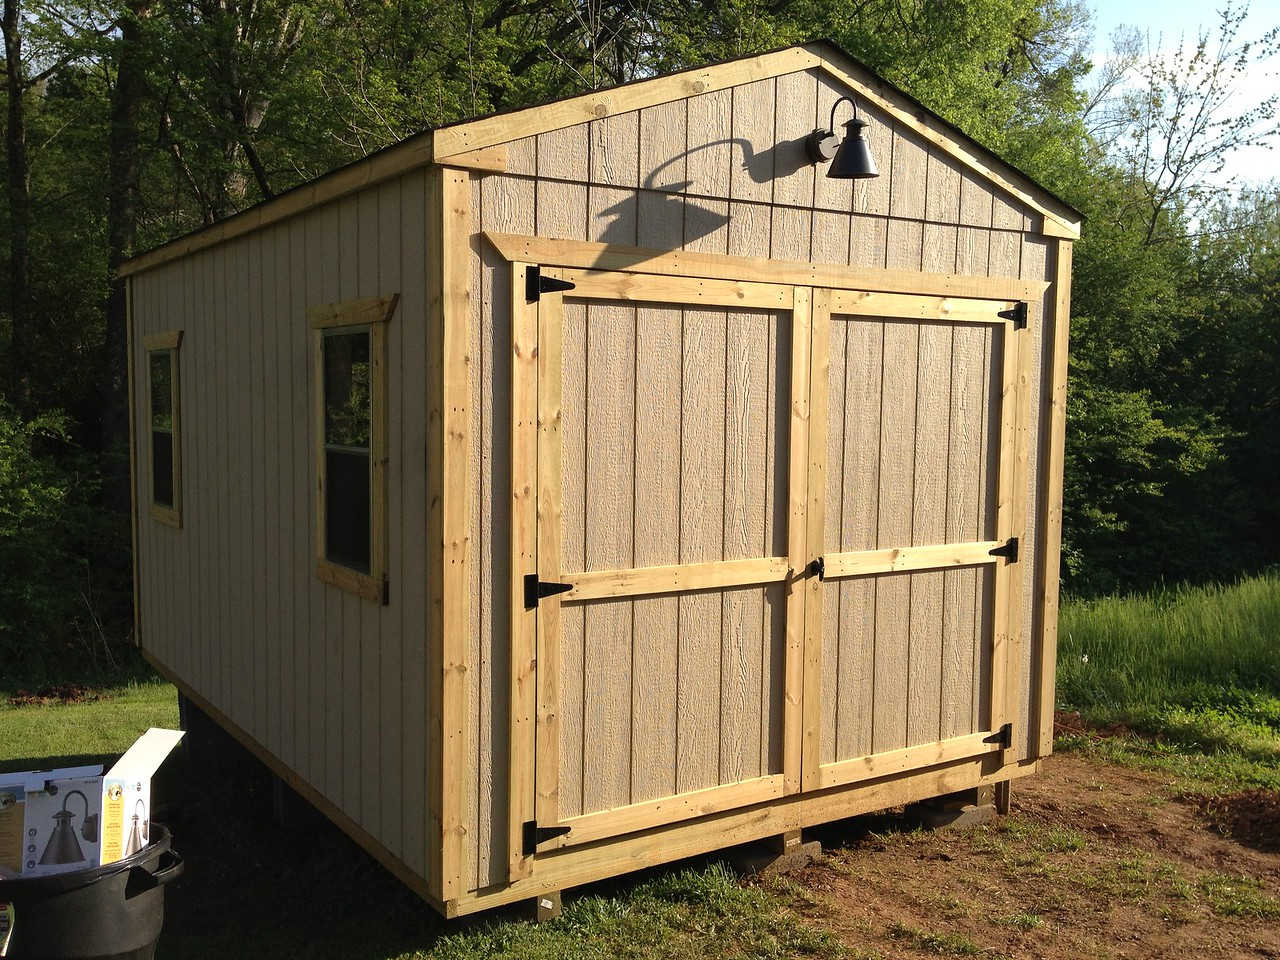 Which means the shed's all done